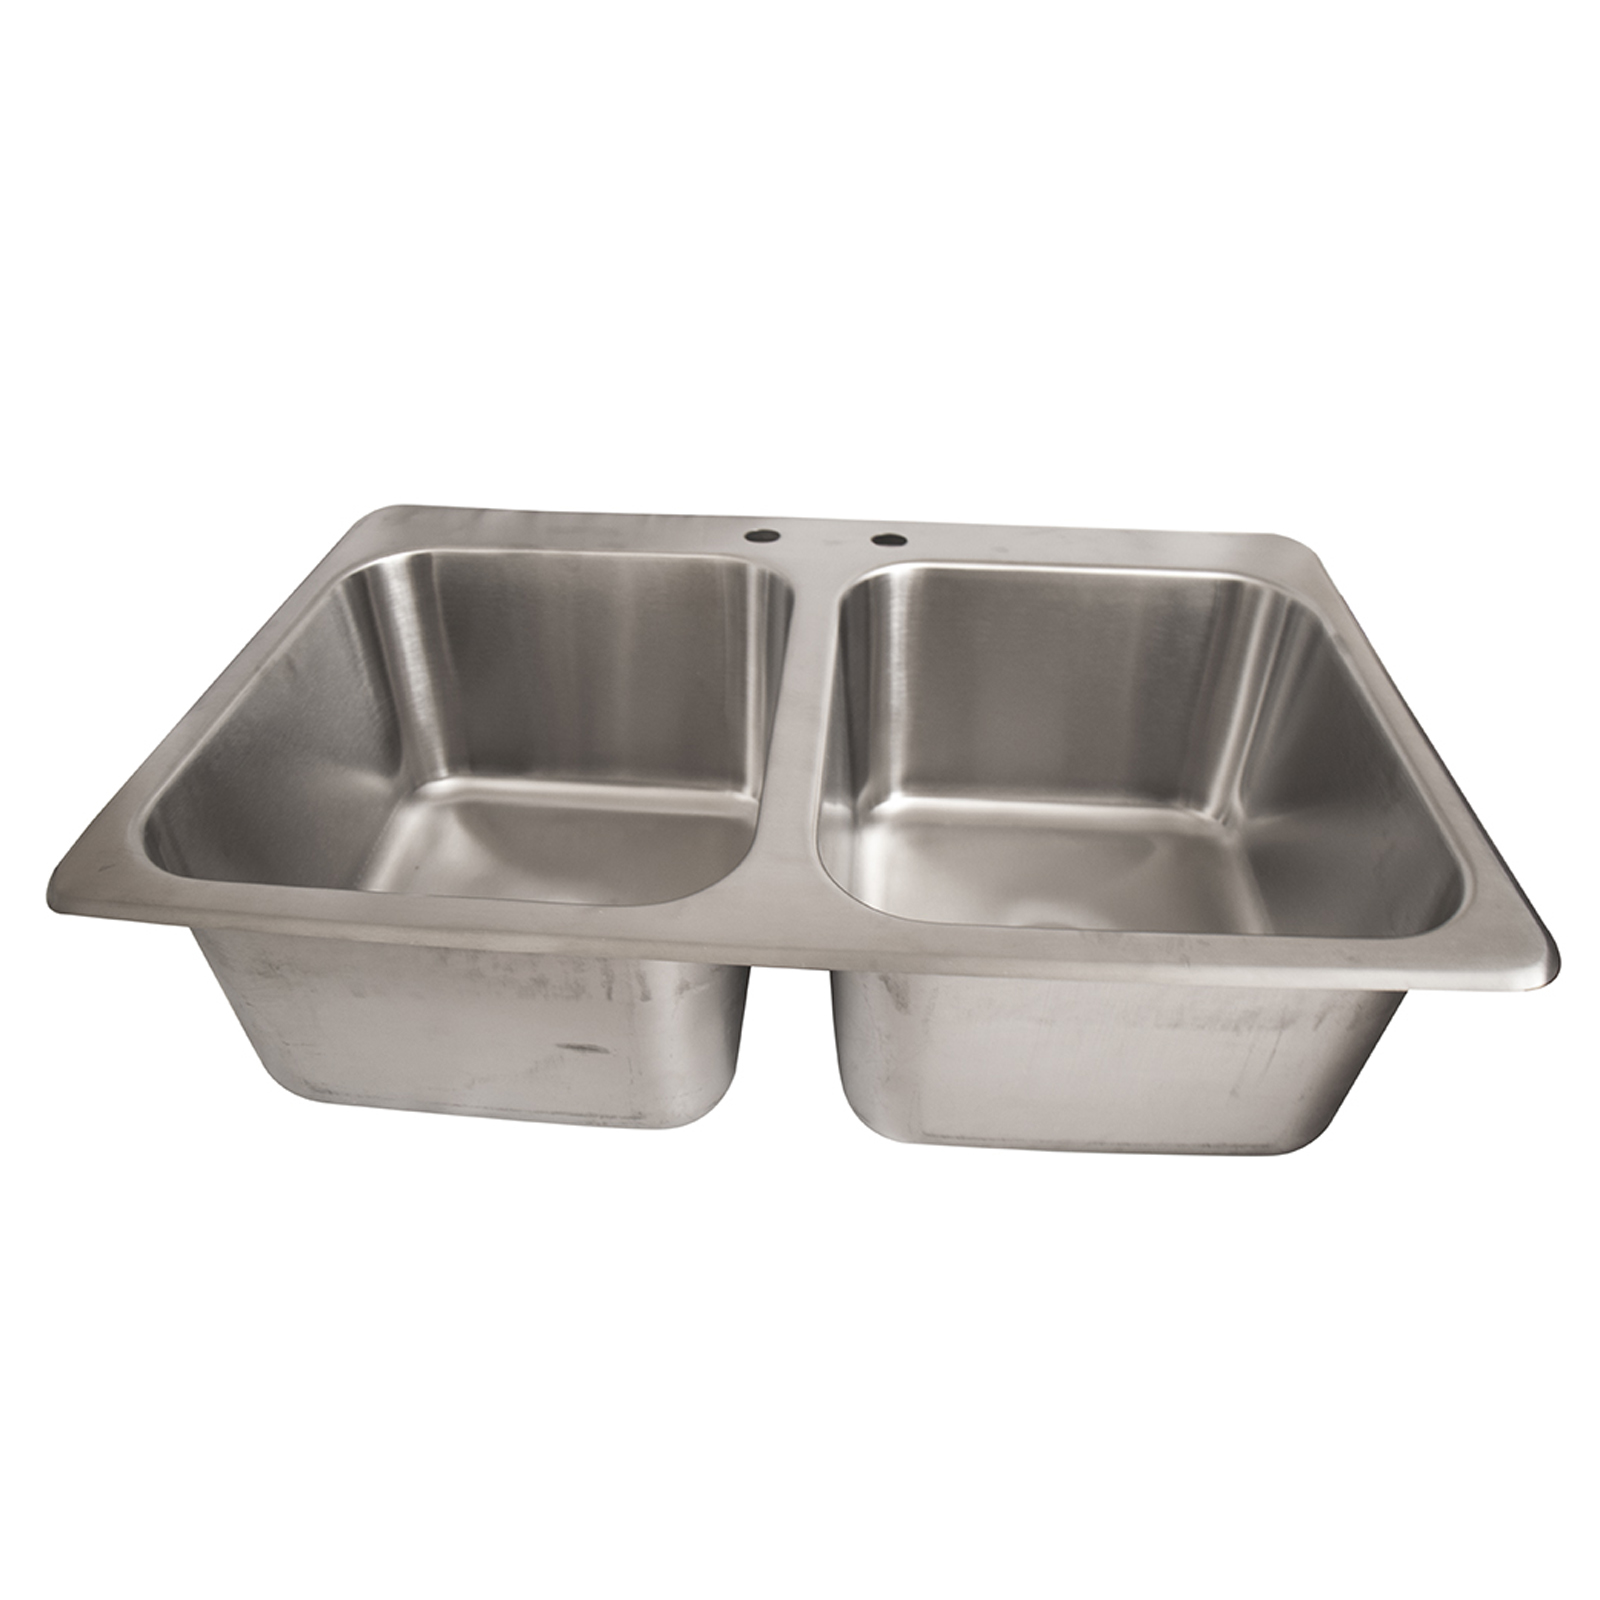 BK Resources DDI2-14161024 sink, drop-in